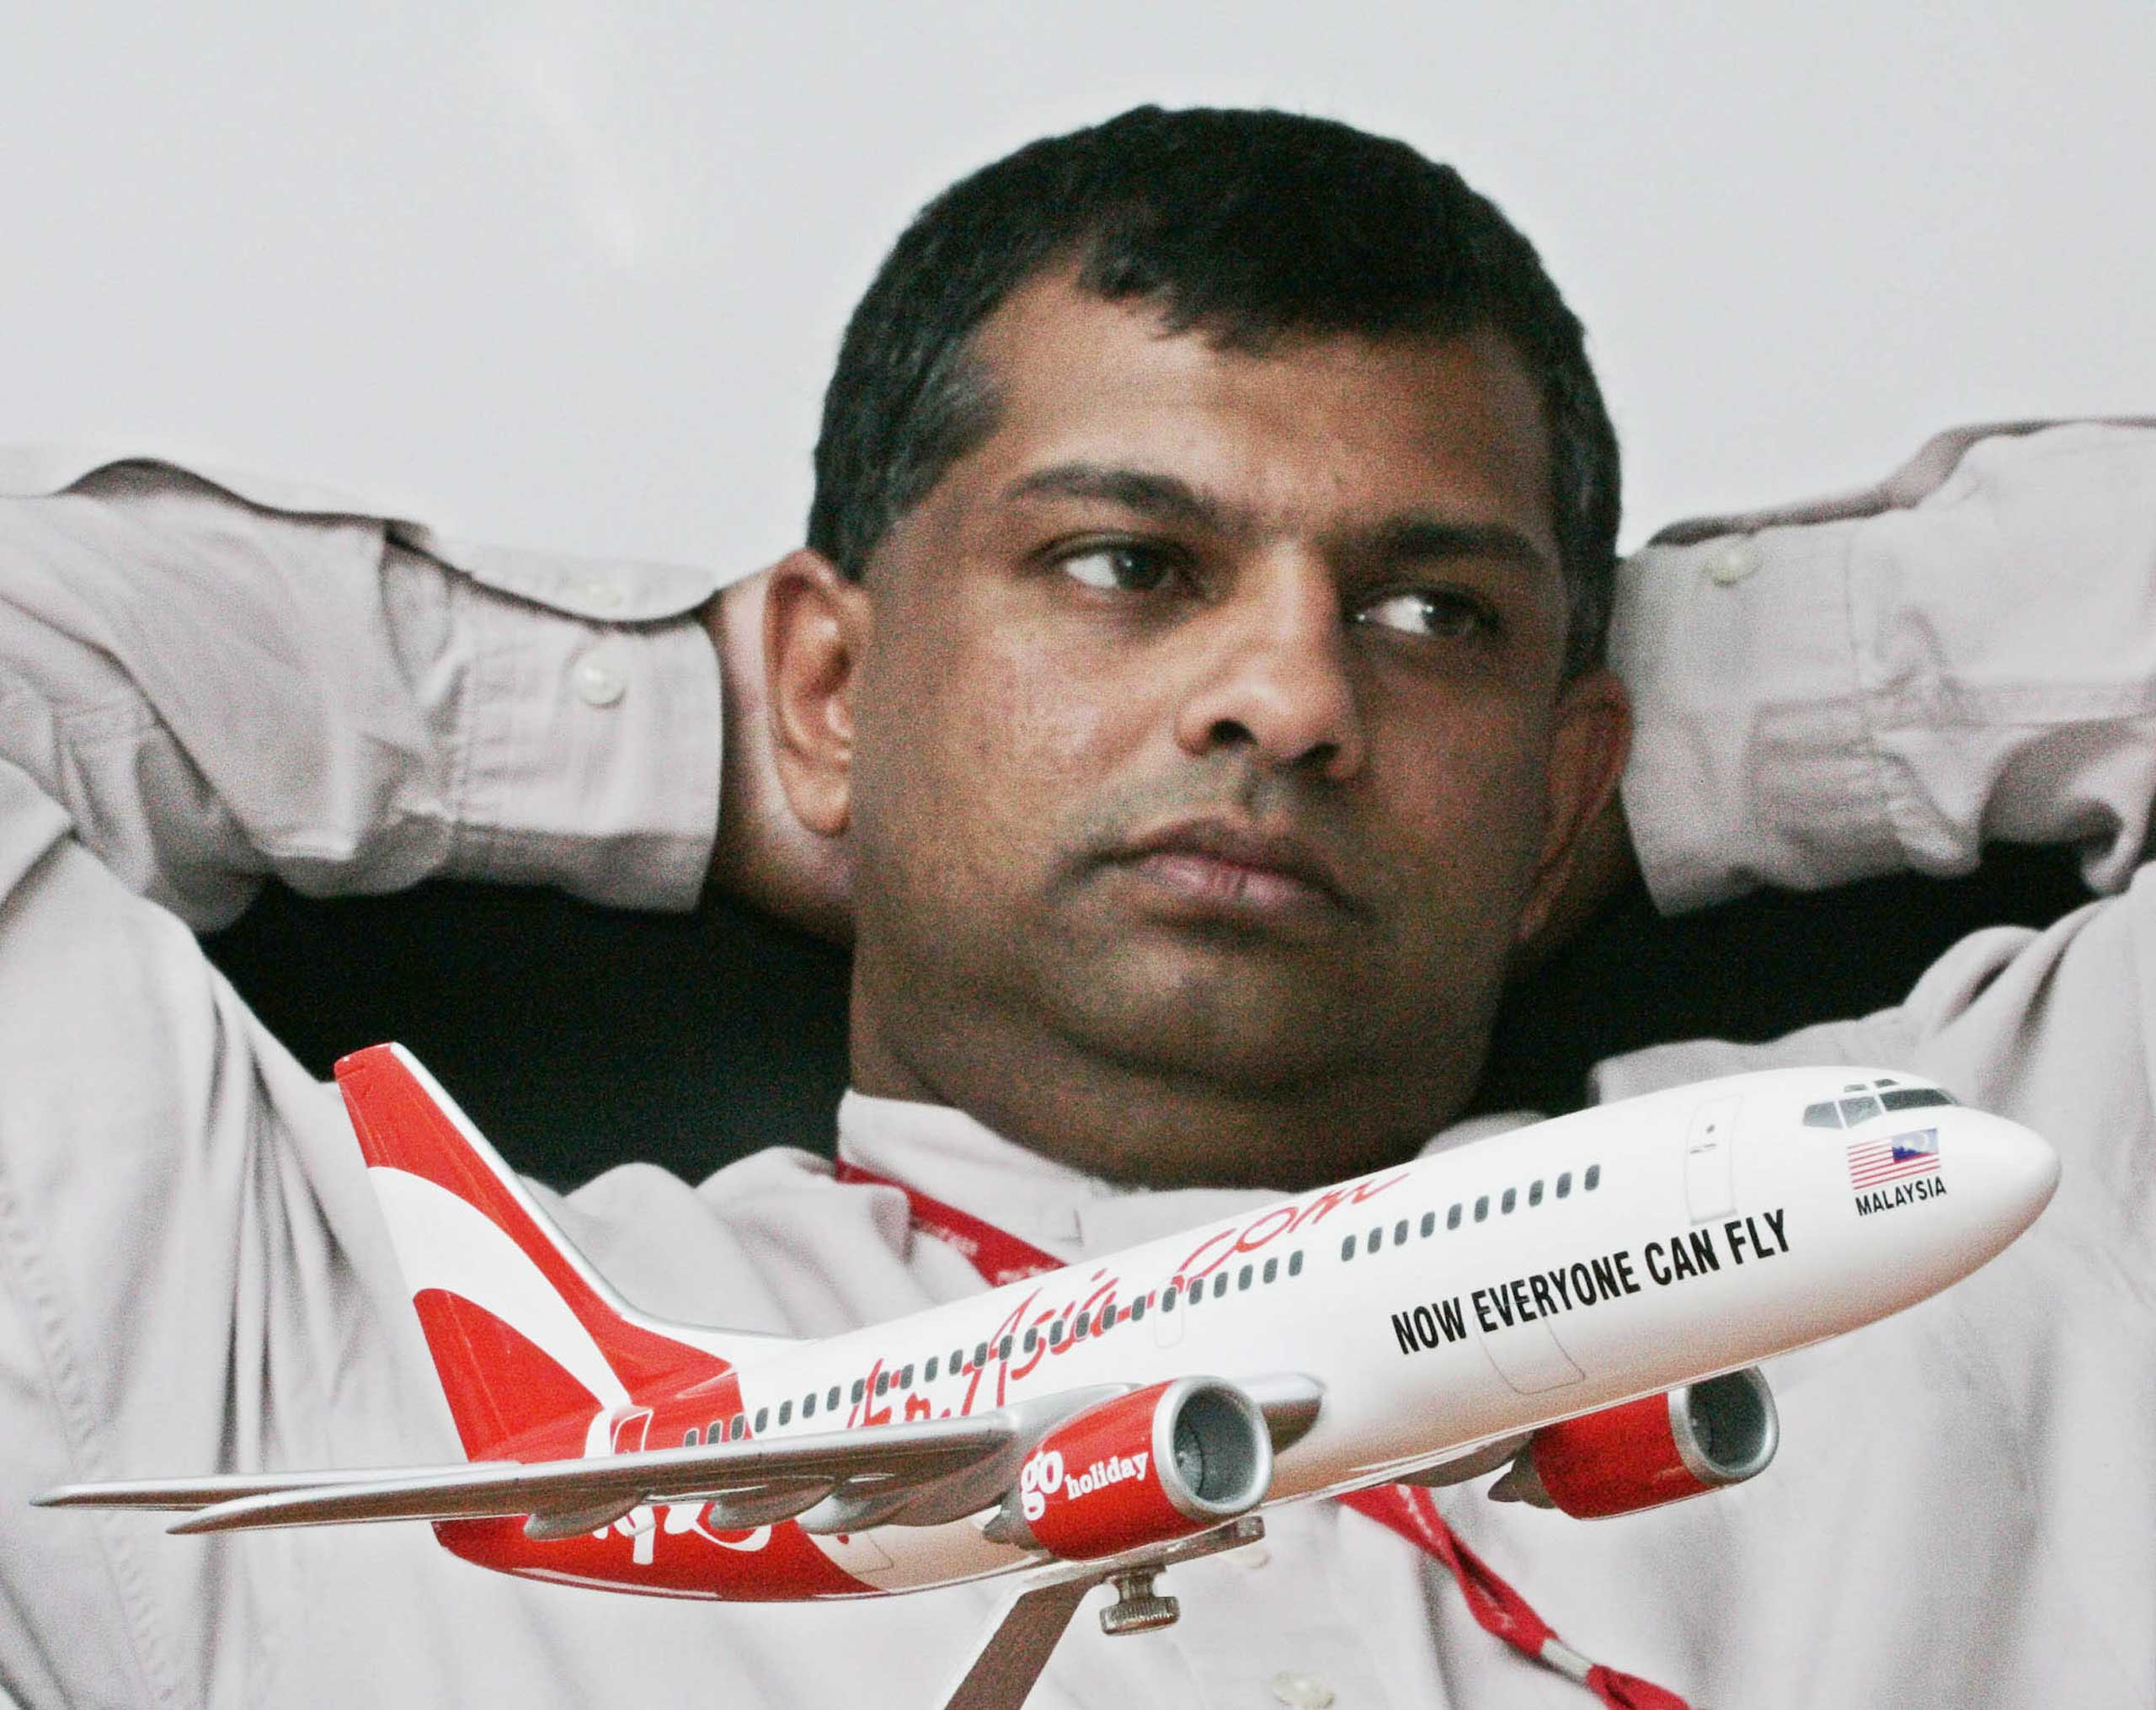 Tony Fernandes, AirAsia's Chief Executive, looks on during an interview at his office in Kuala Lumpur International Airport in Sepang, Malaysia, Aug, 9, 2005. Purchased in December of 2001 by Fernandes, AirAsia pioneered low-cost travel in Asia.